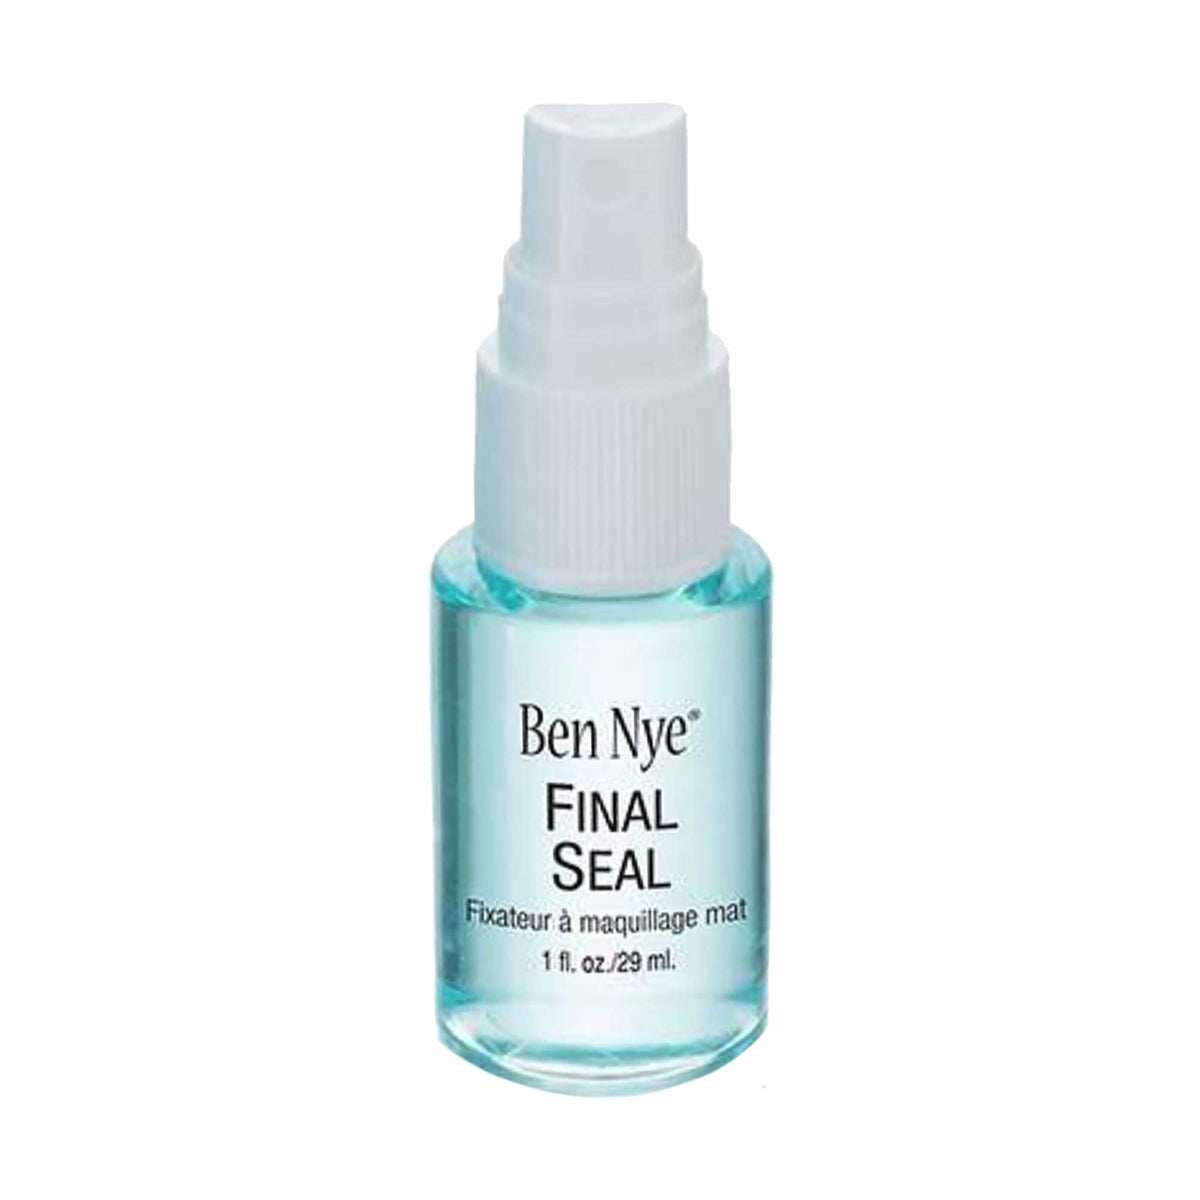 Ben Nye Final Seal - Matte Make-up Sealer Spray